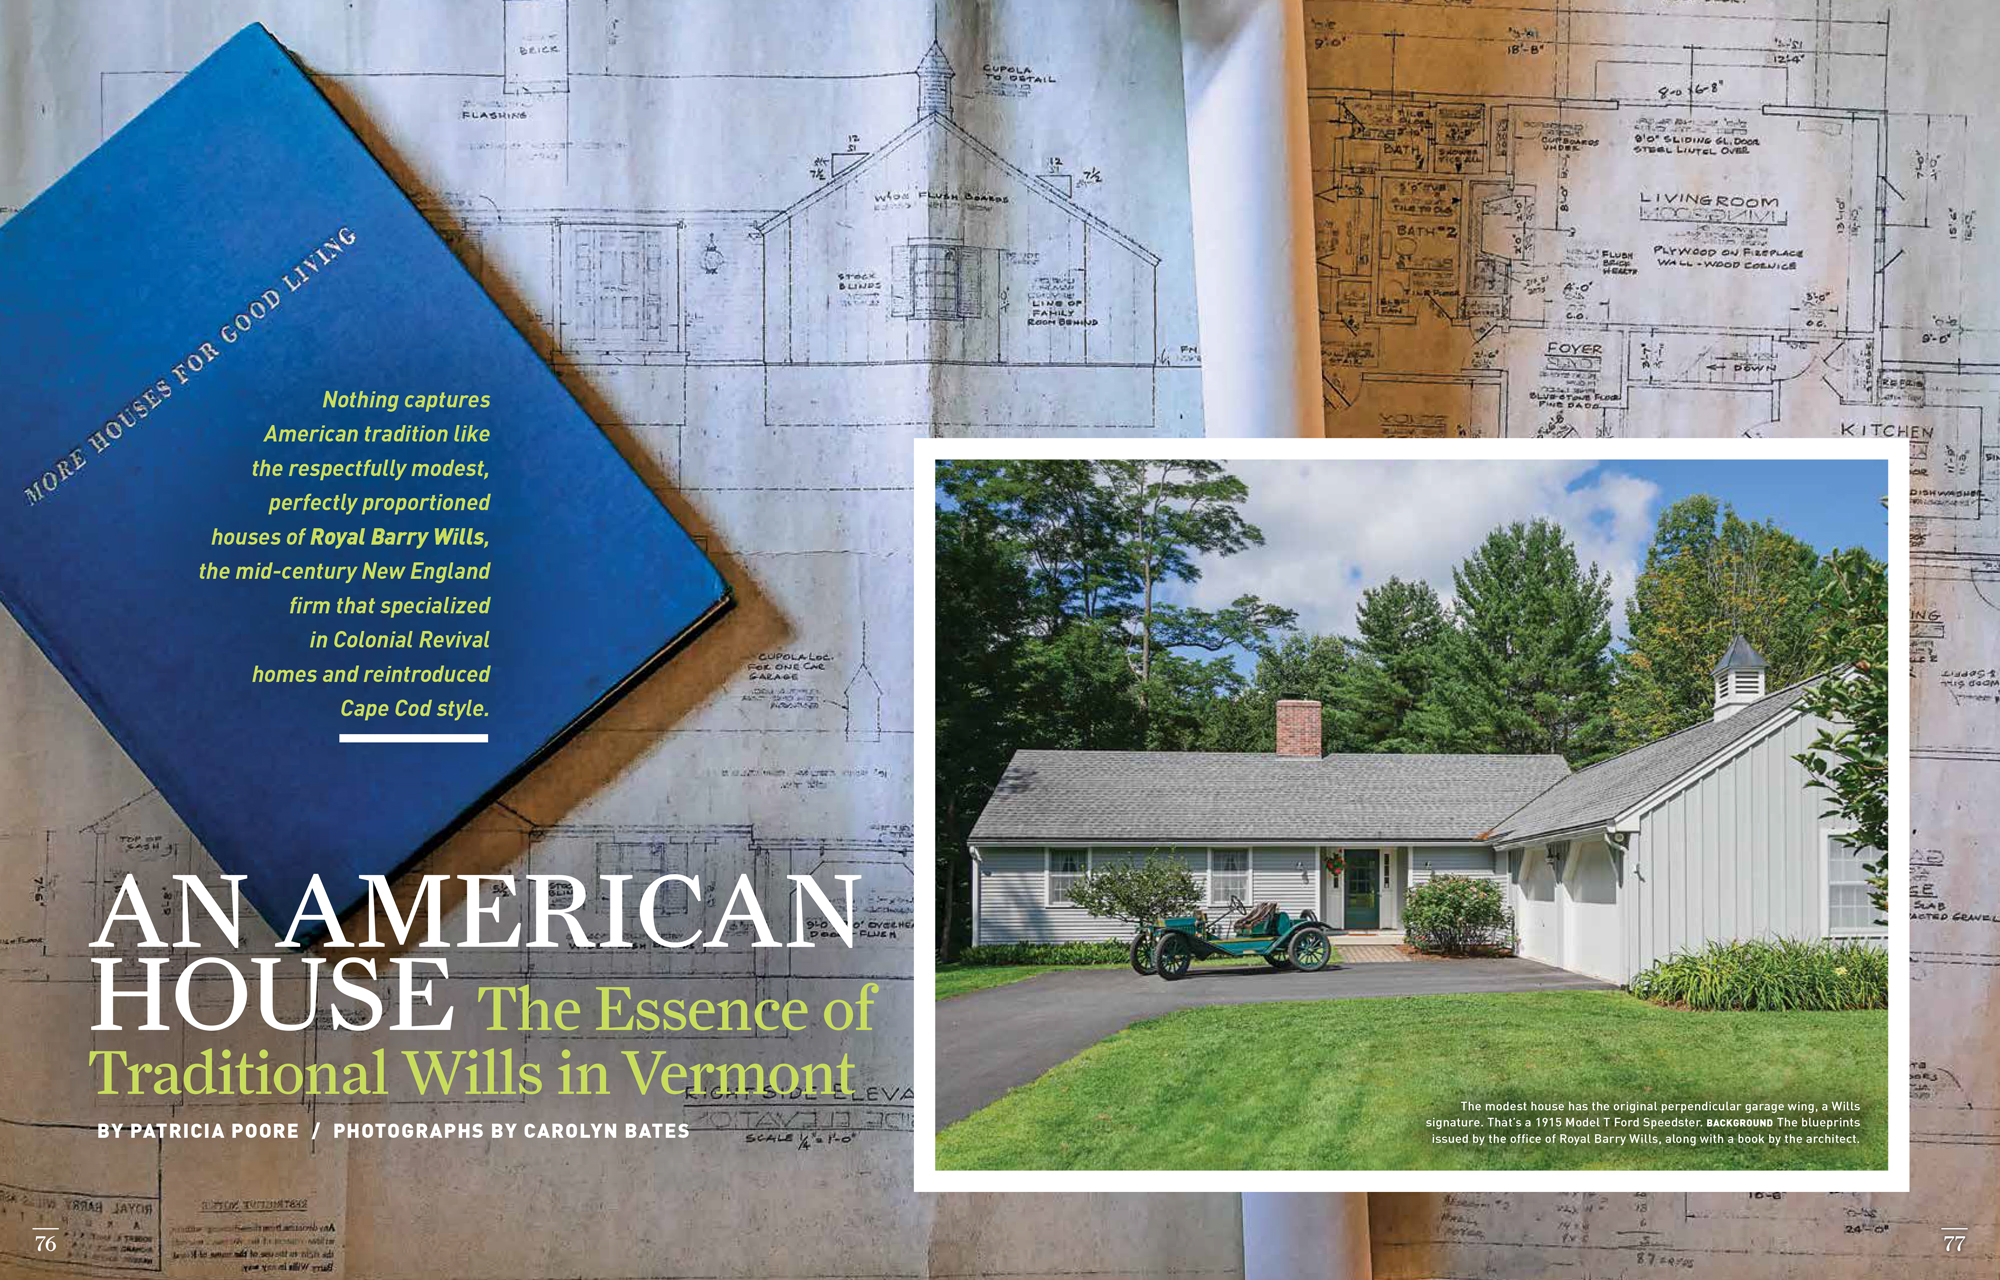 An American House featured in OLD HOUSE JOURNAL